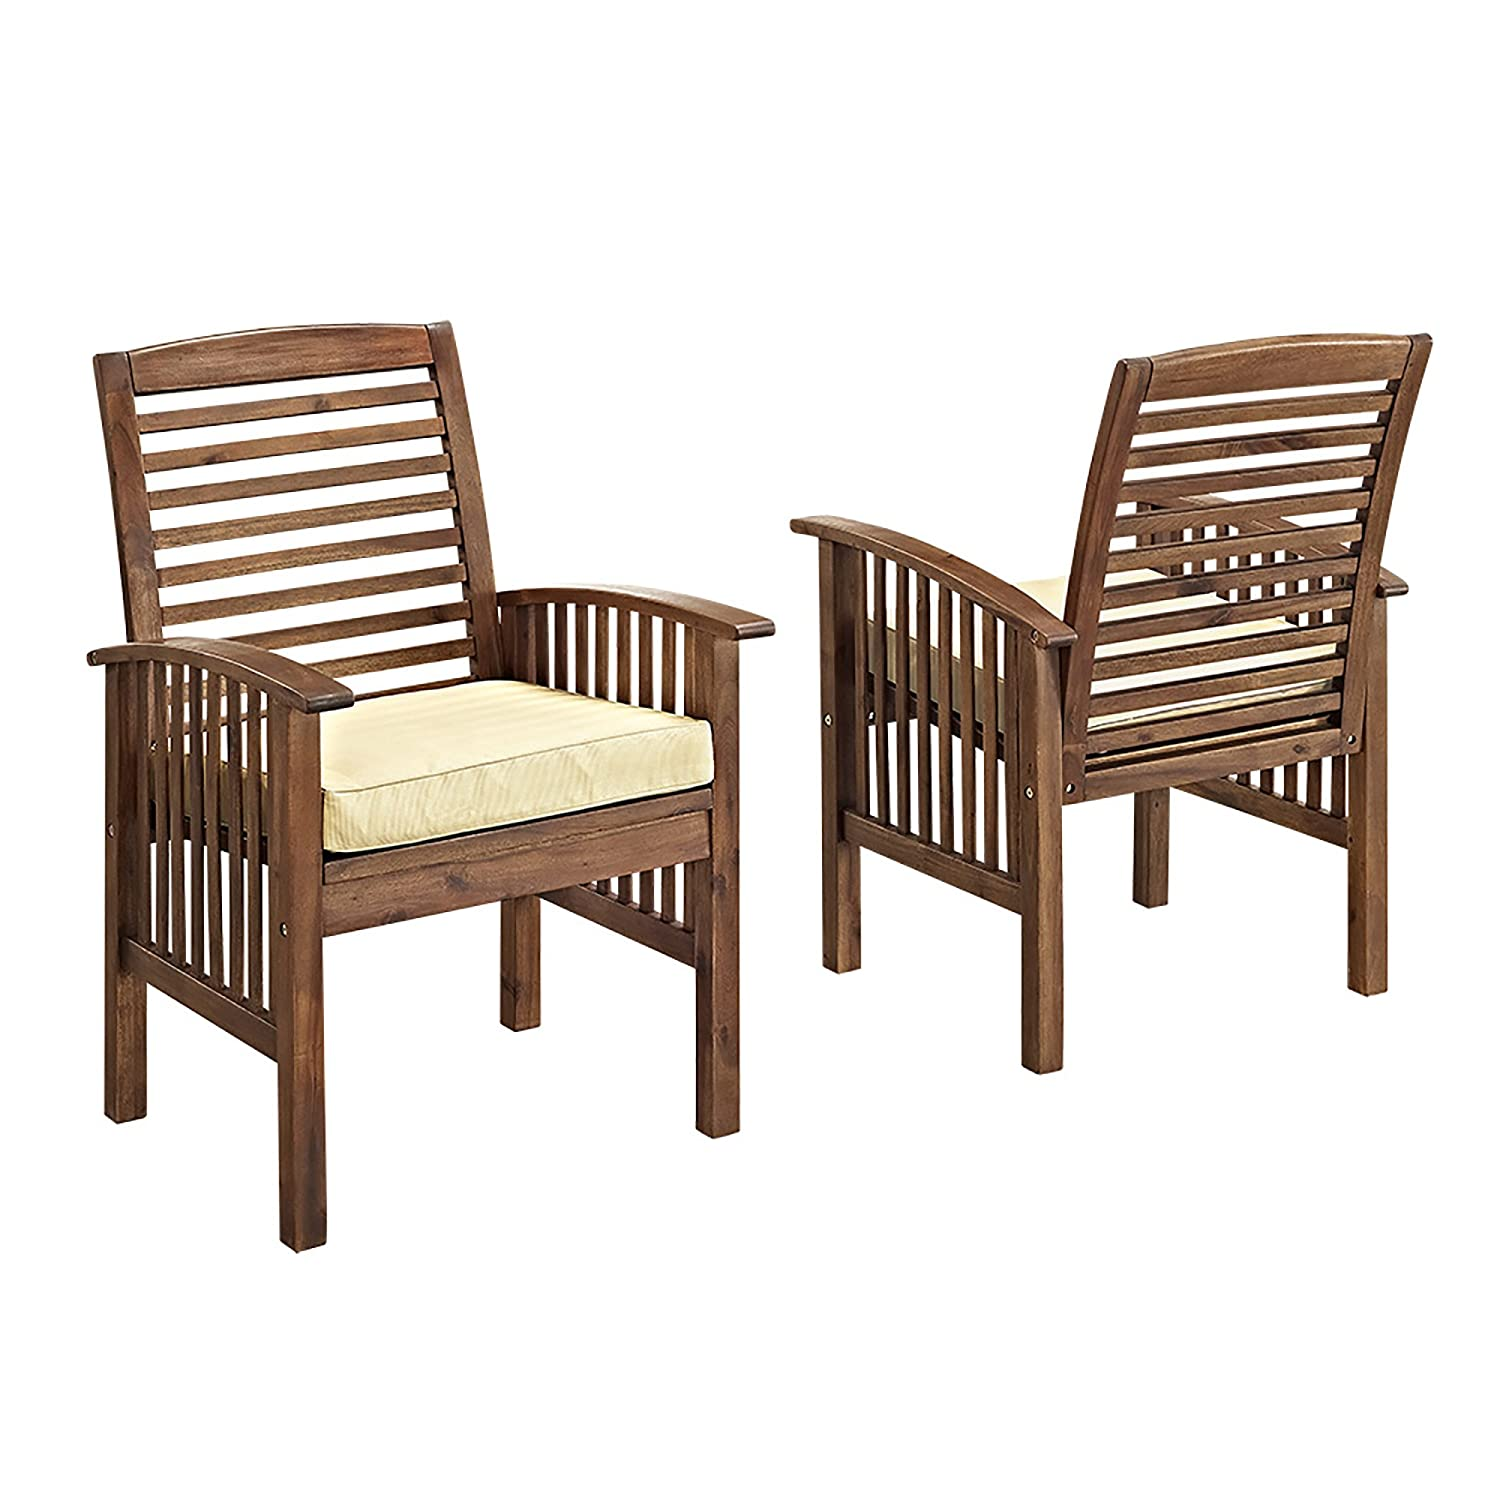 Gentil Amazon.com : WE Furniture Solid Acacia Wood Patio Chairs, Set Of 2 : Garden  U0026 Outdoor